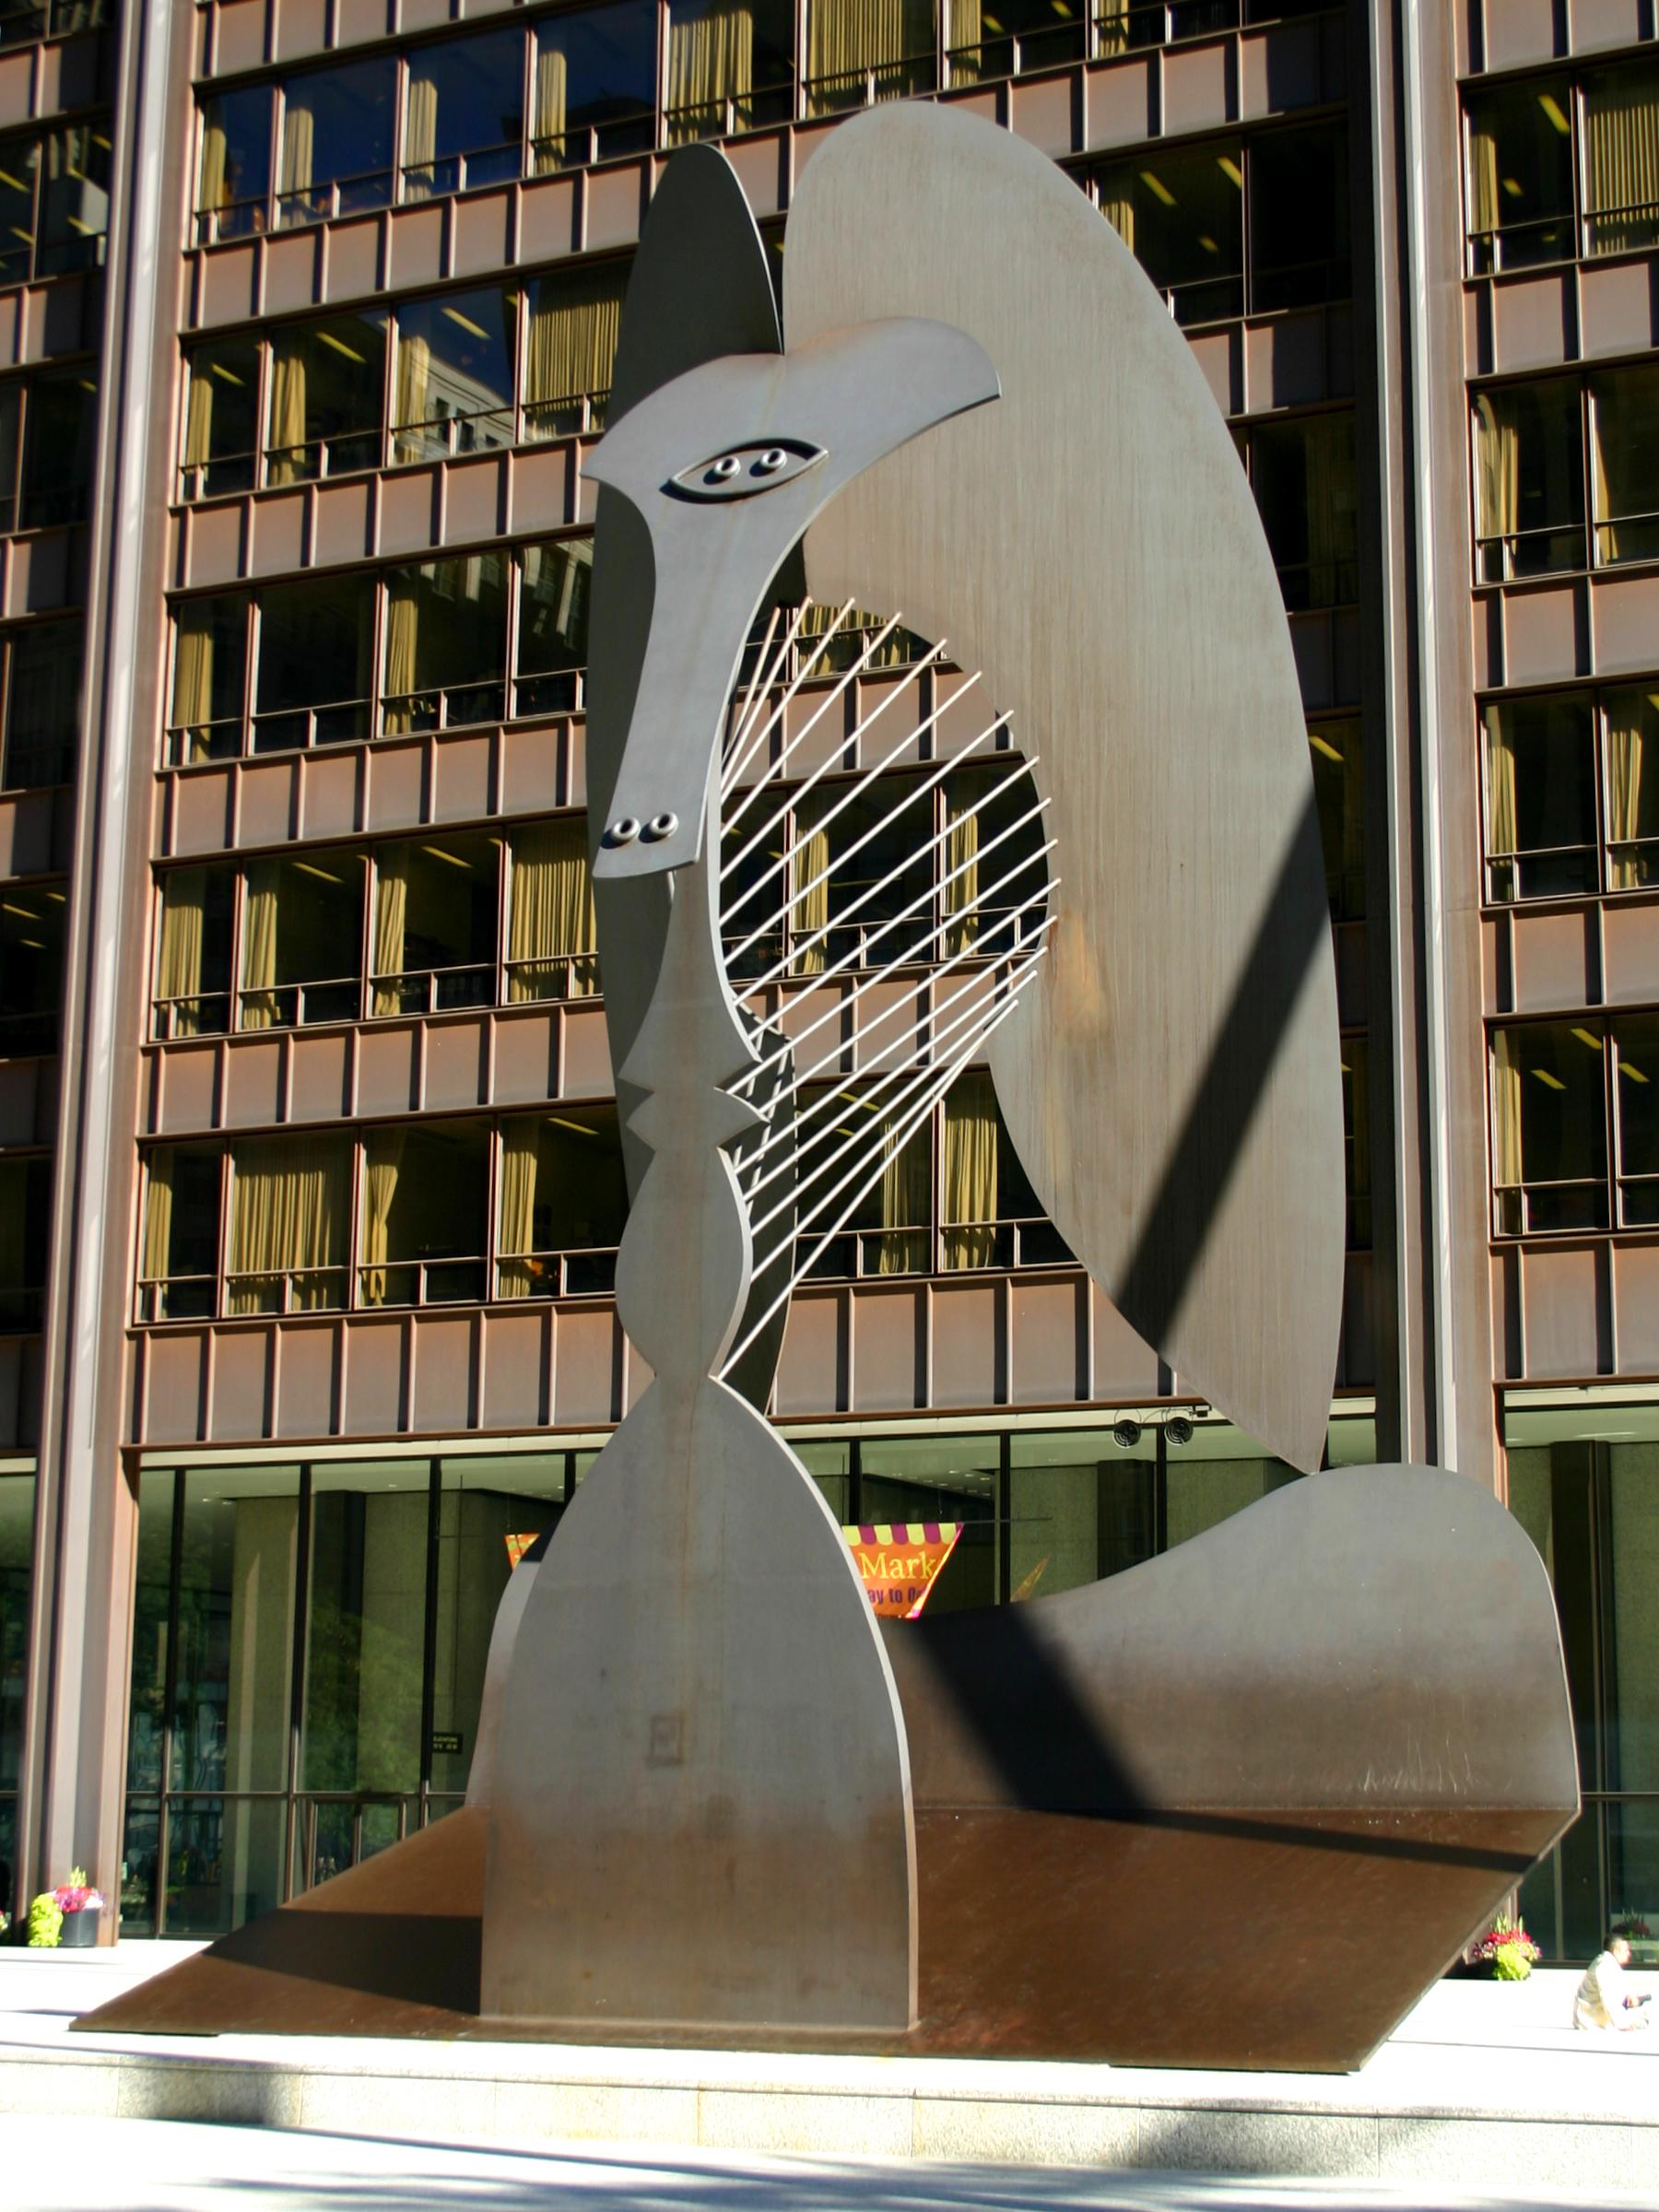 Chicago Picasso, located in Daley Plaza